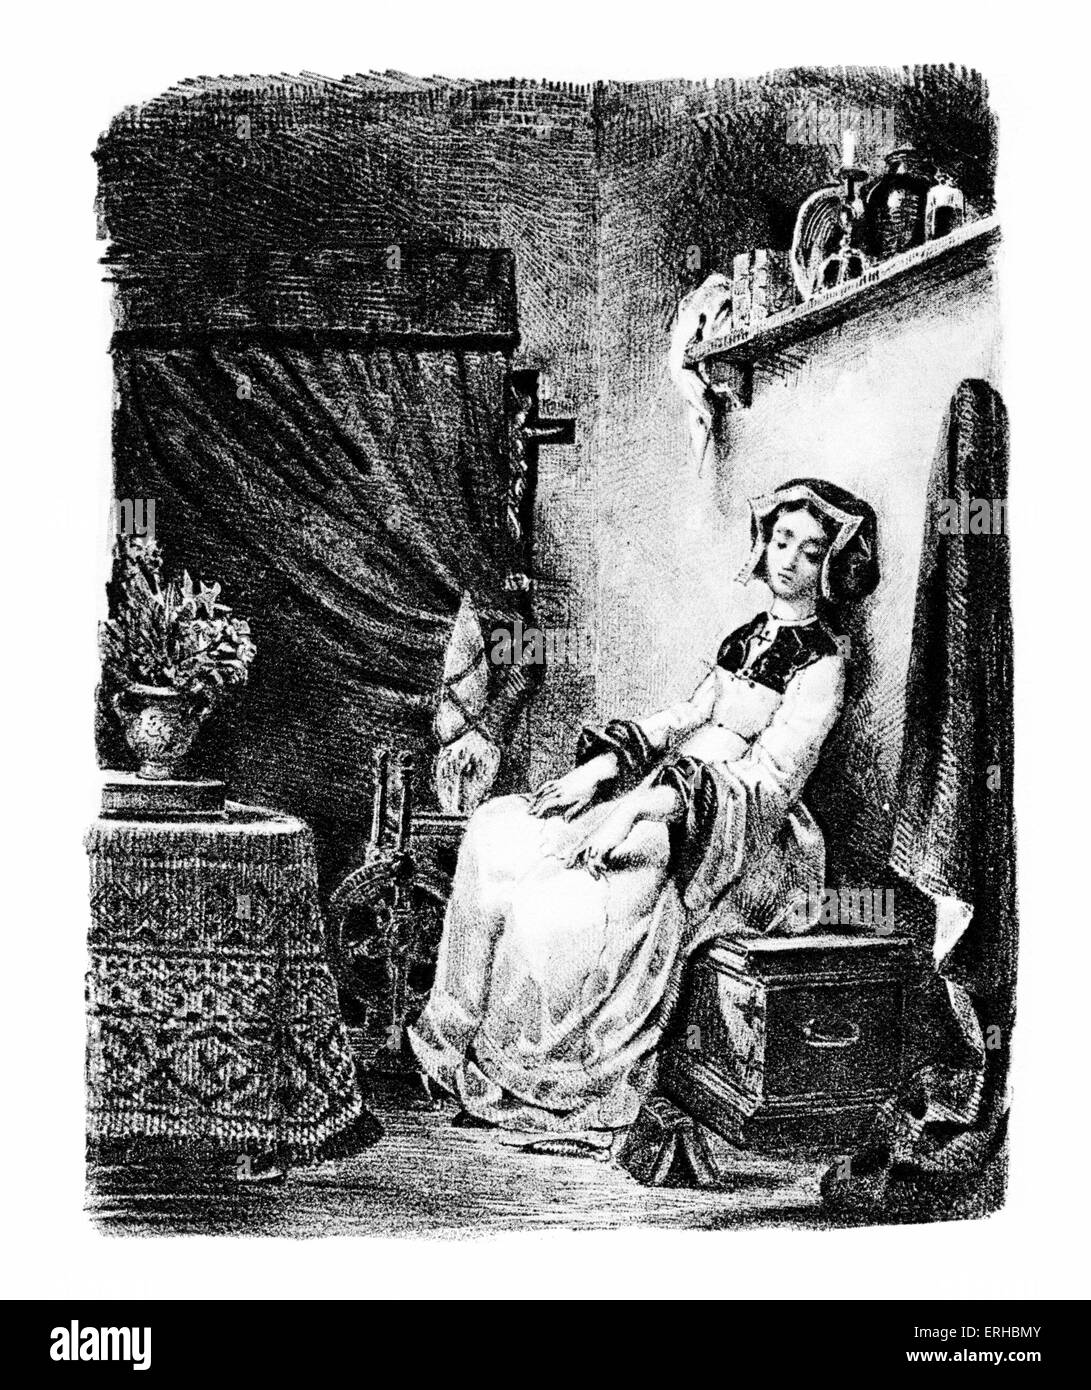 Goethe 's Faust, 1828.  Marguerite / Gretchen at the spinning wheel Lithograph by Eugene Delacroix.  German poet, Stock Photo